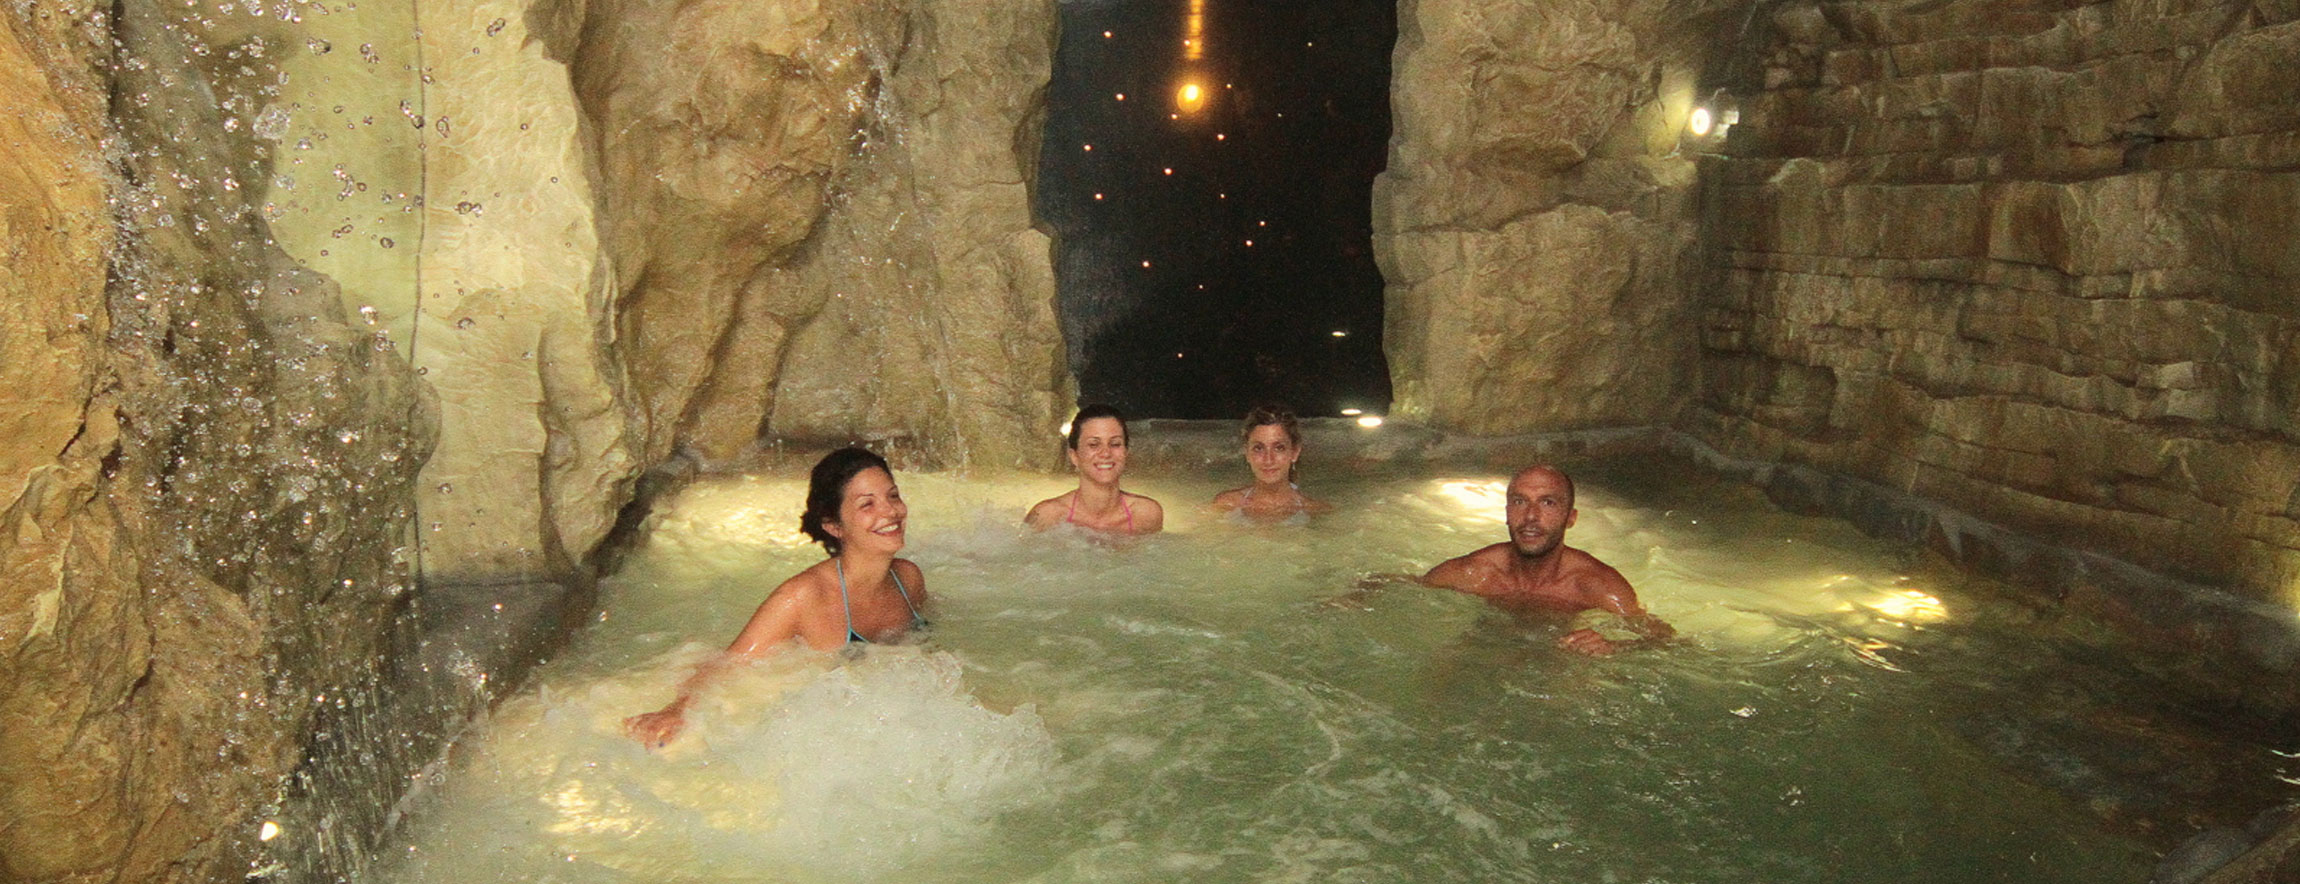 https://www.ilcasalone.it/slide/top_terme.jpg